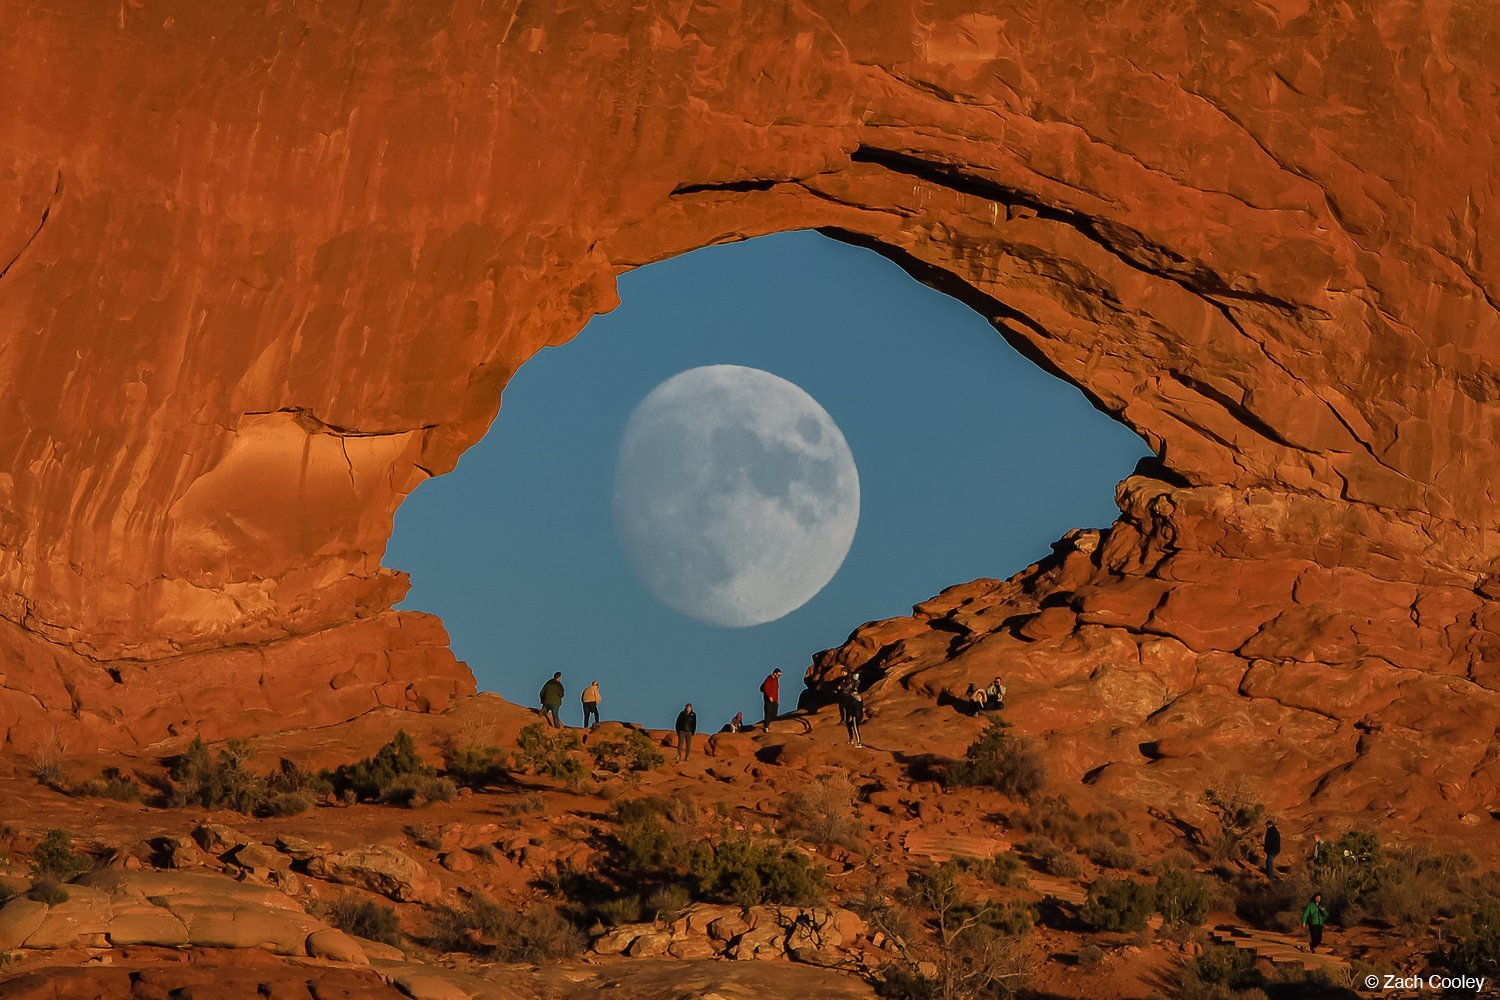 Wow!: The Stories Behind 5 Amazing Photos